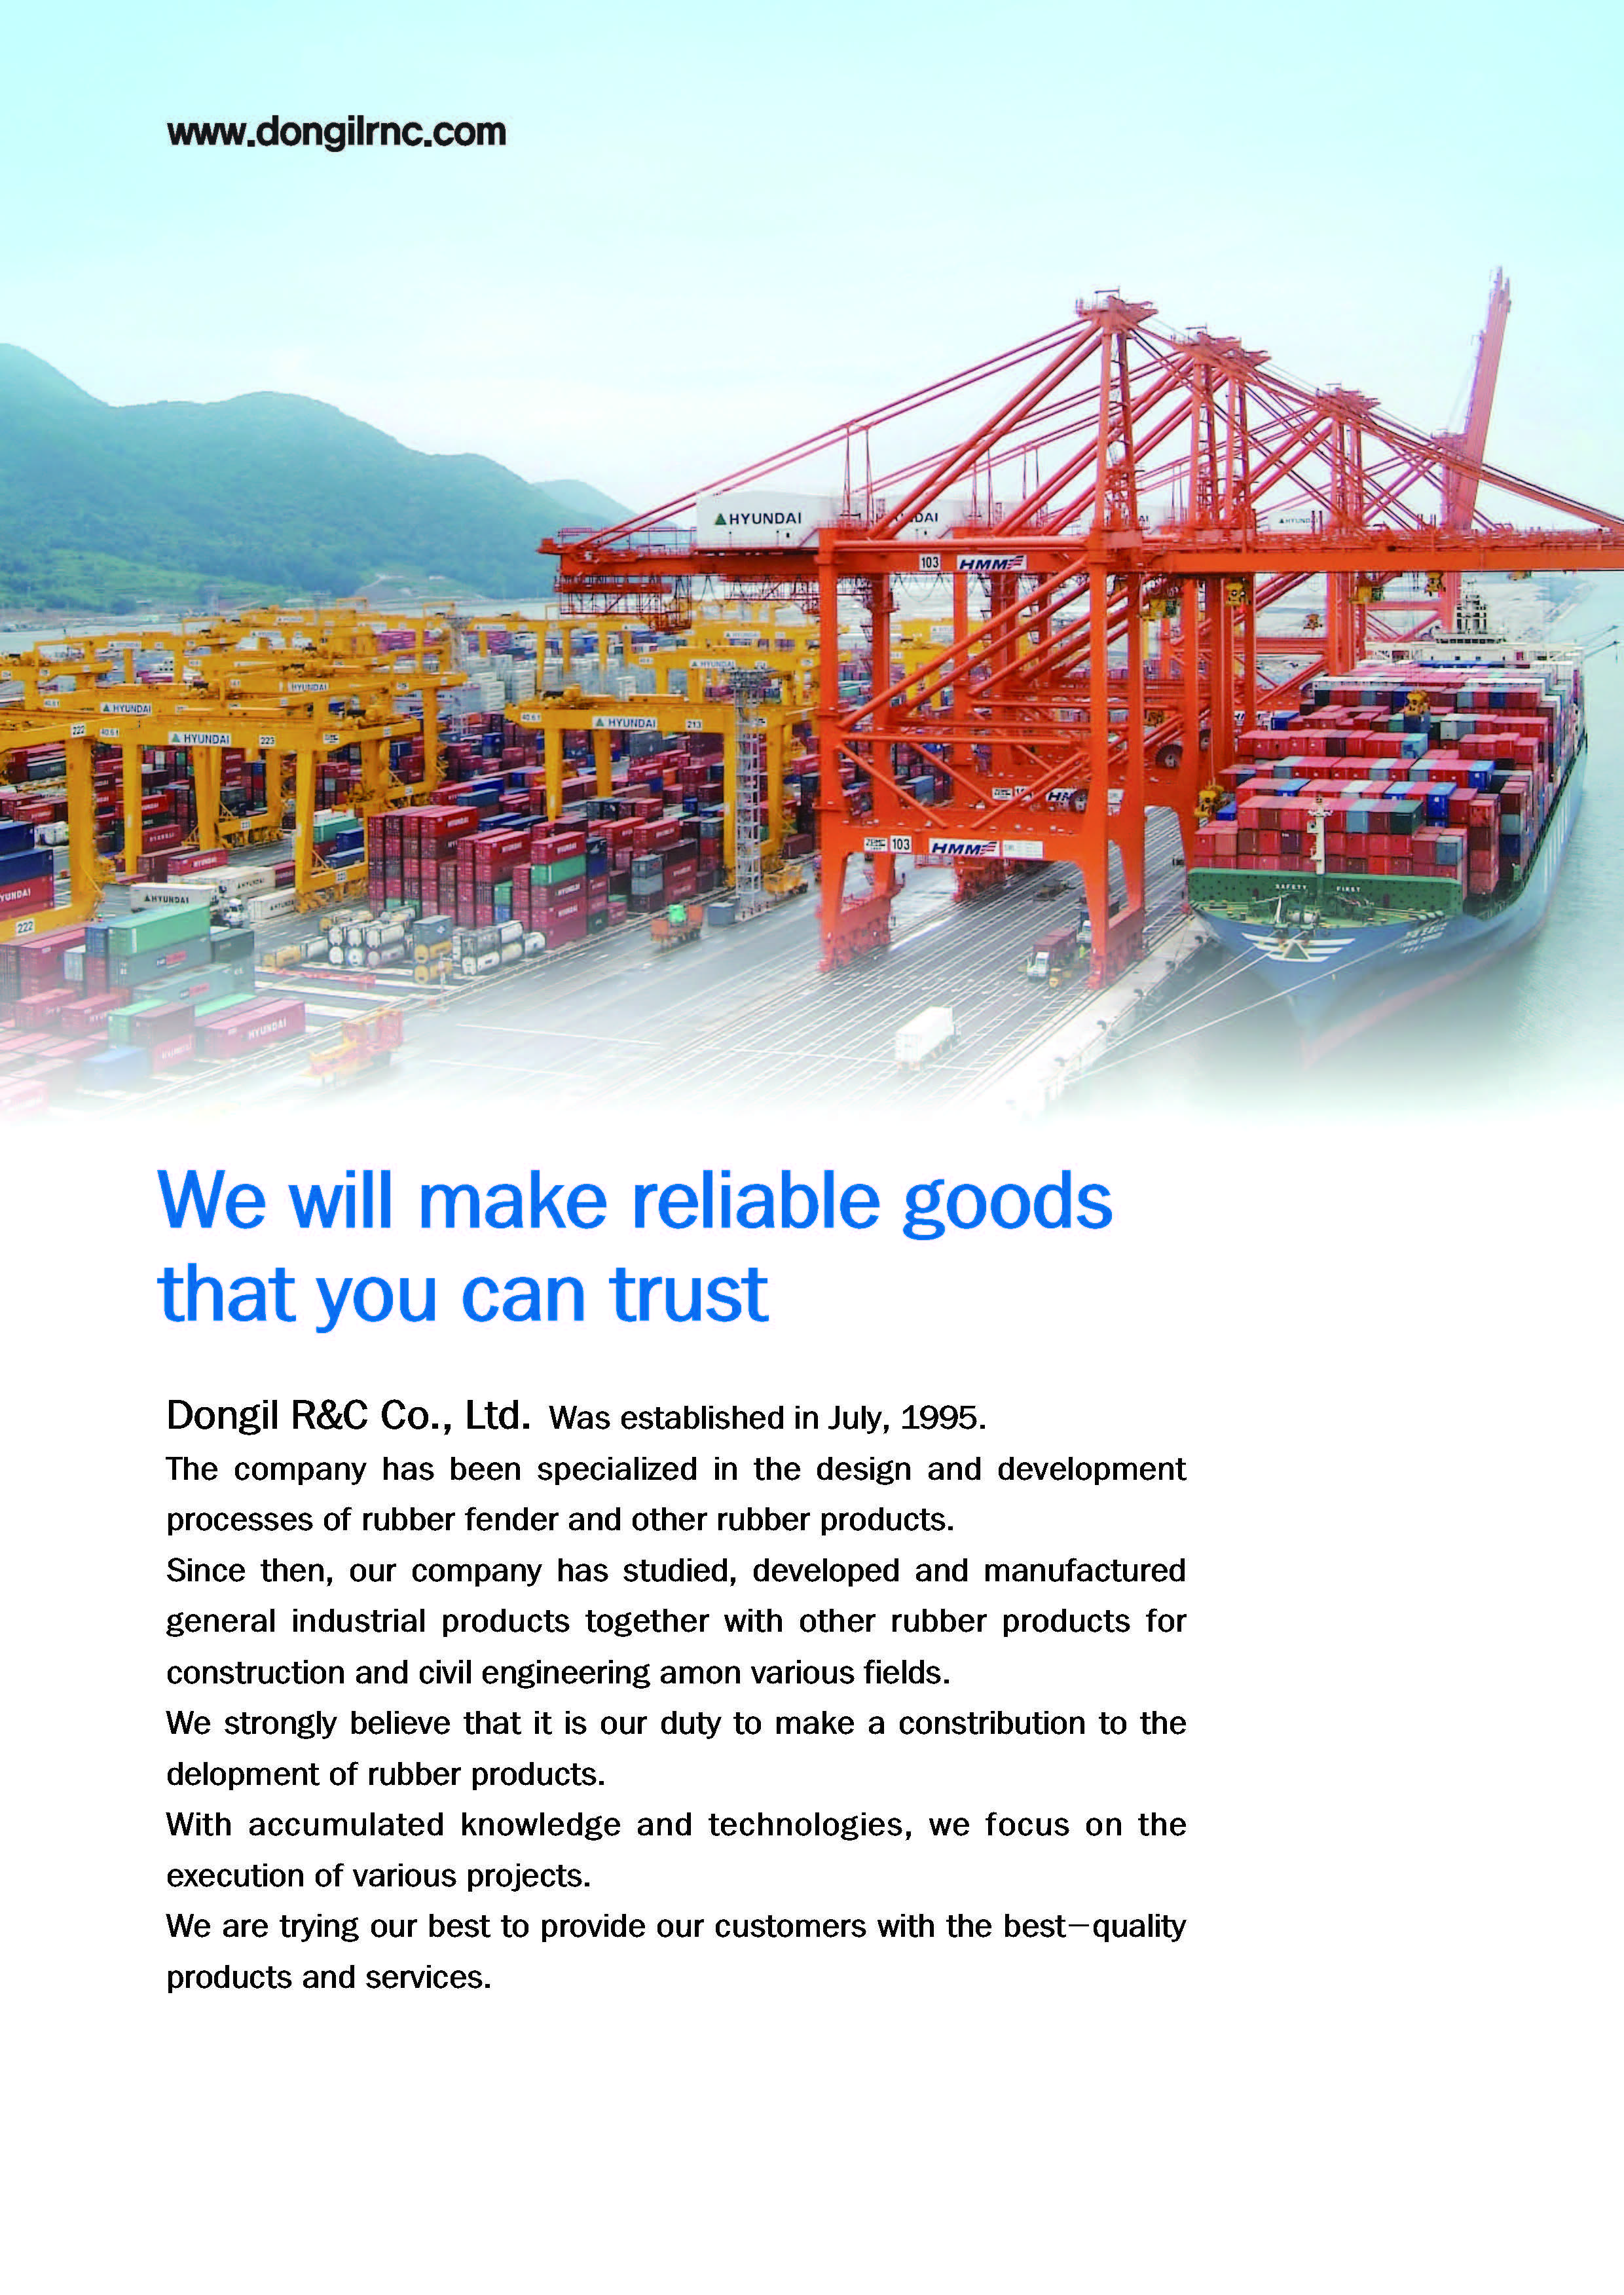 Since then, our company has studied, developed and manufactured general industrial products together with other rubber products for construction and civil engineering among various fields. We strongly believe that it is our duty to make a contribution to the development of rubber products. With accumulated knowledge and technologies, we focus on the execution of various projects. We are trying our best to provide our customers with the best-quality products and services.